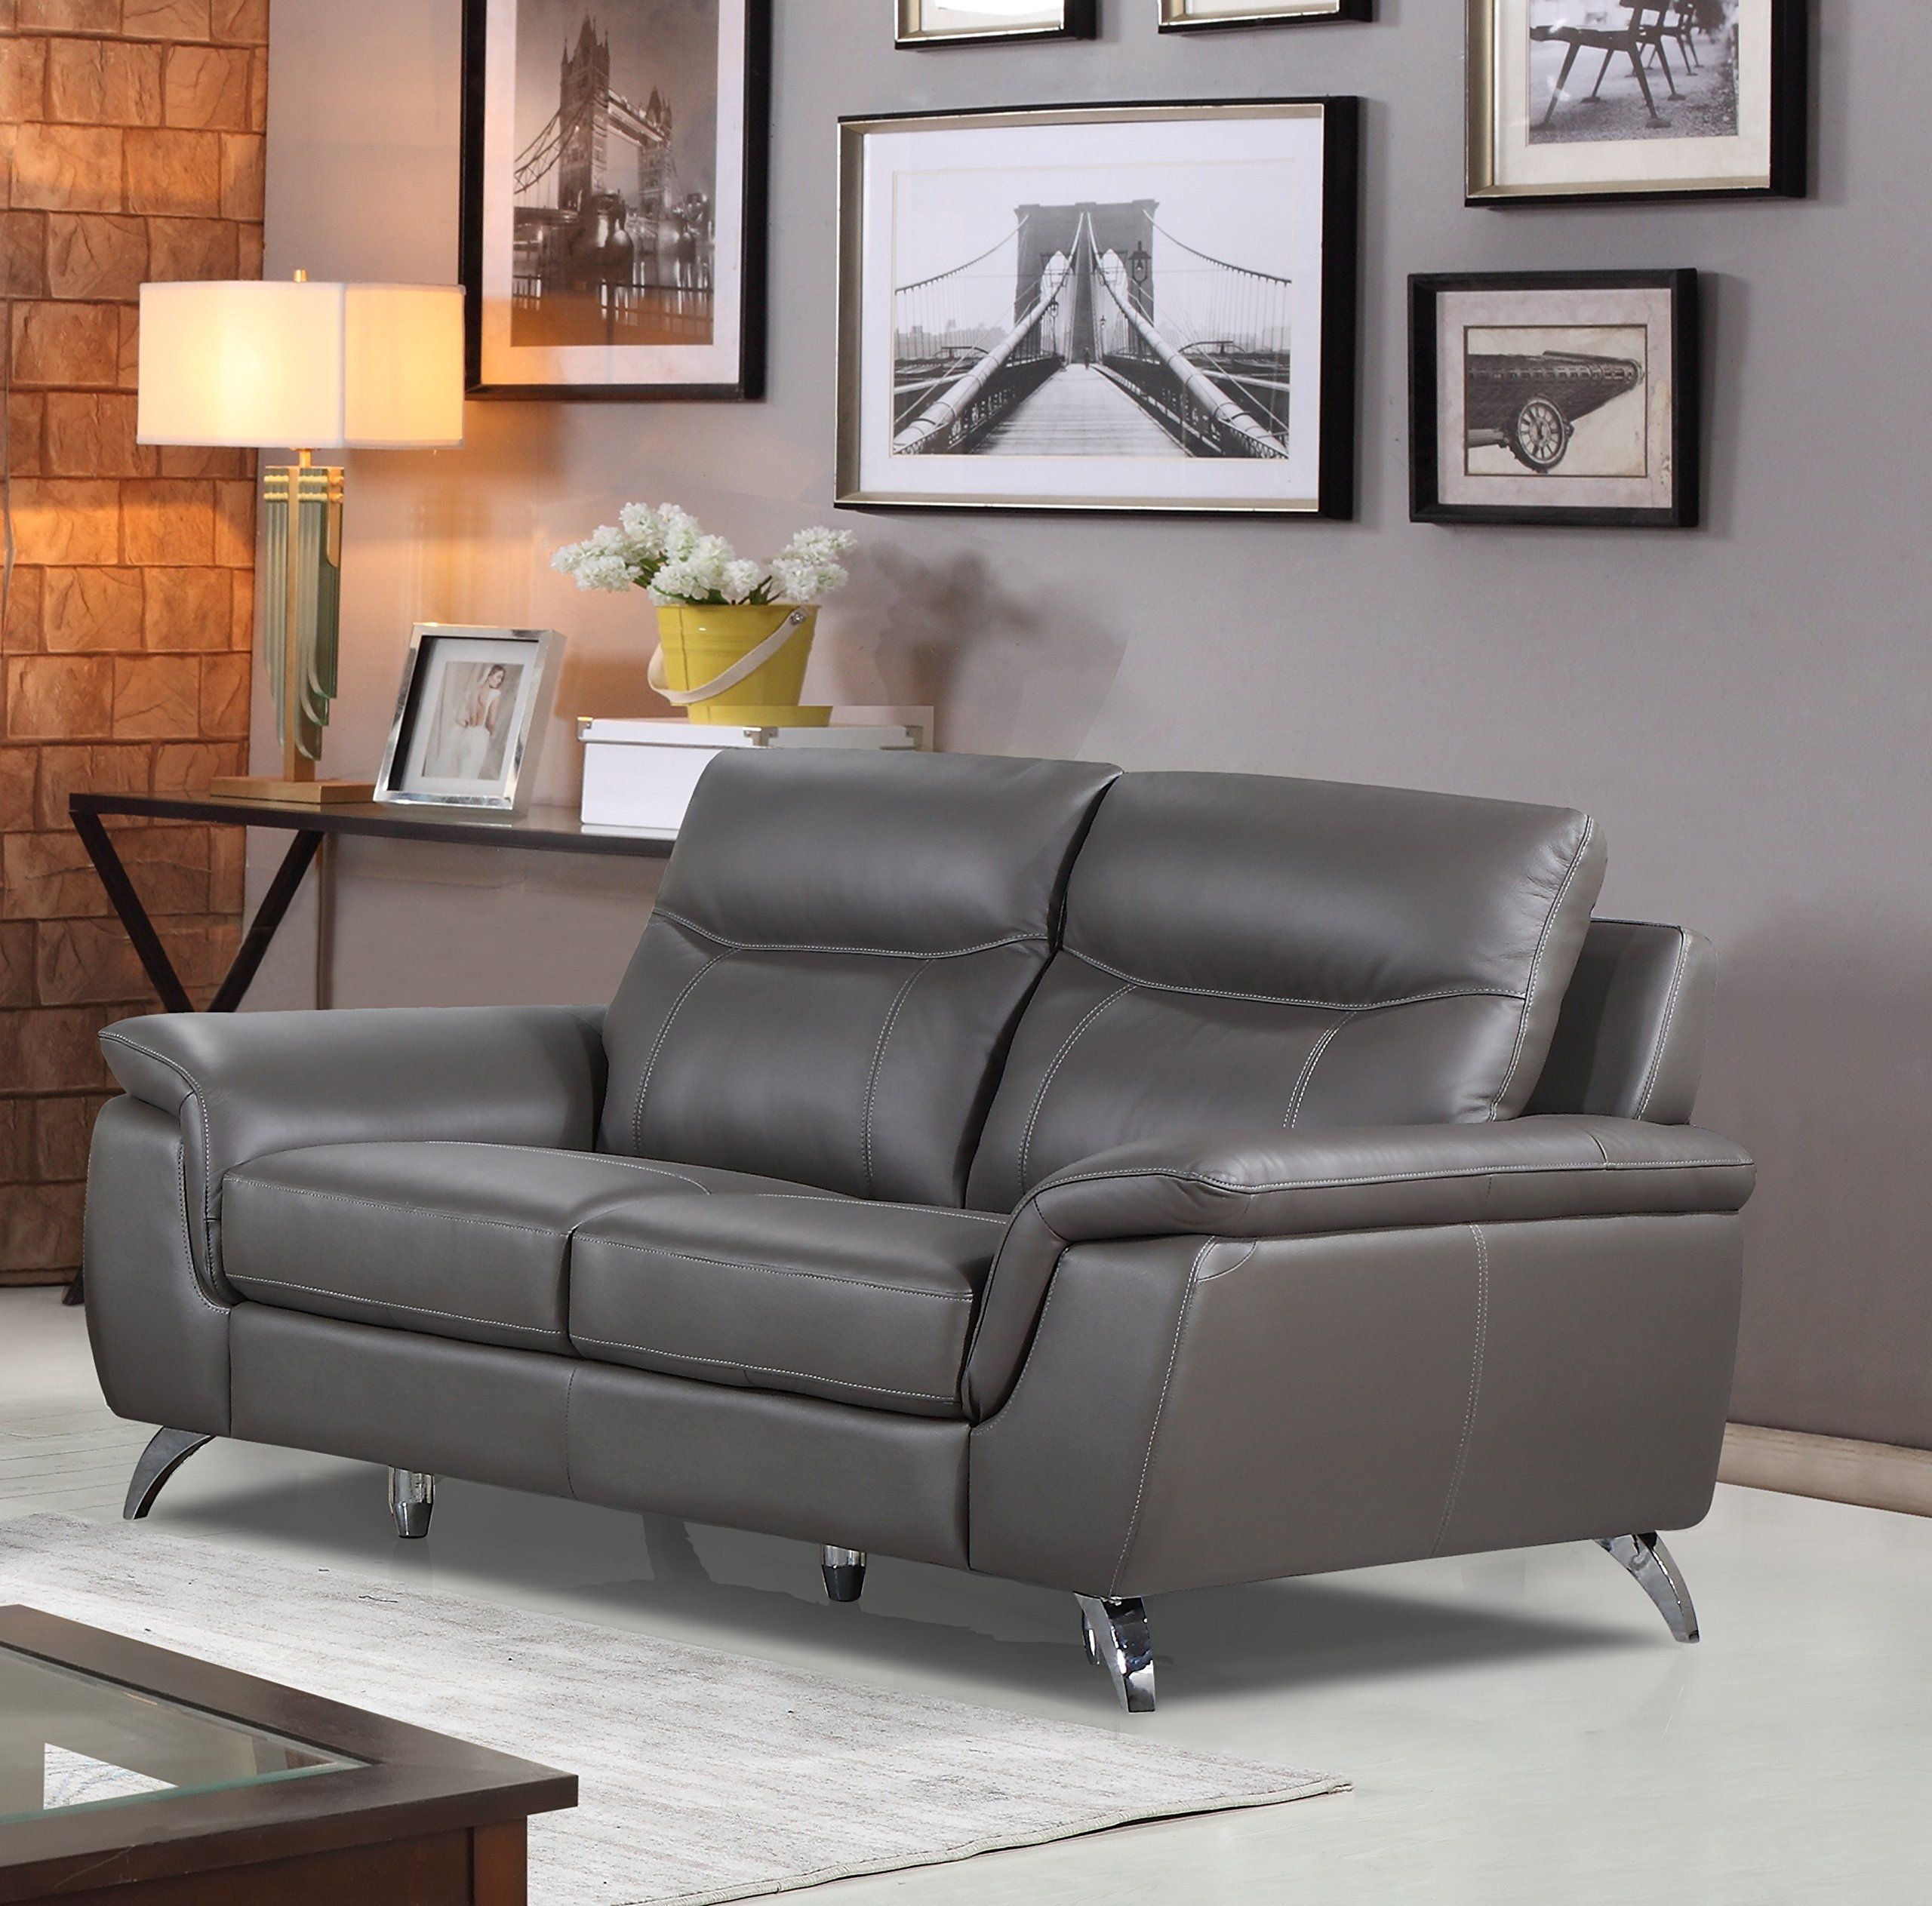 Fabulous Cortesi Home Chicago Genuine Leather Loveseat Grey Grey Unemploymentrelief Wooden Chair Designs For Living Room Unemploymentrelieforg